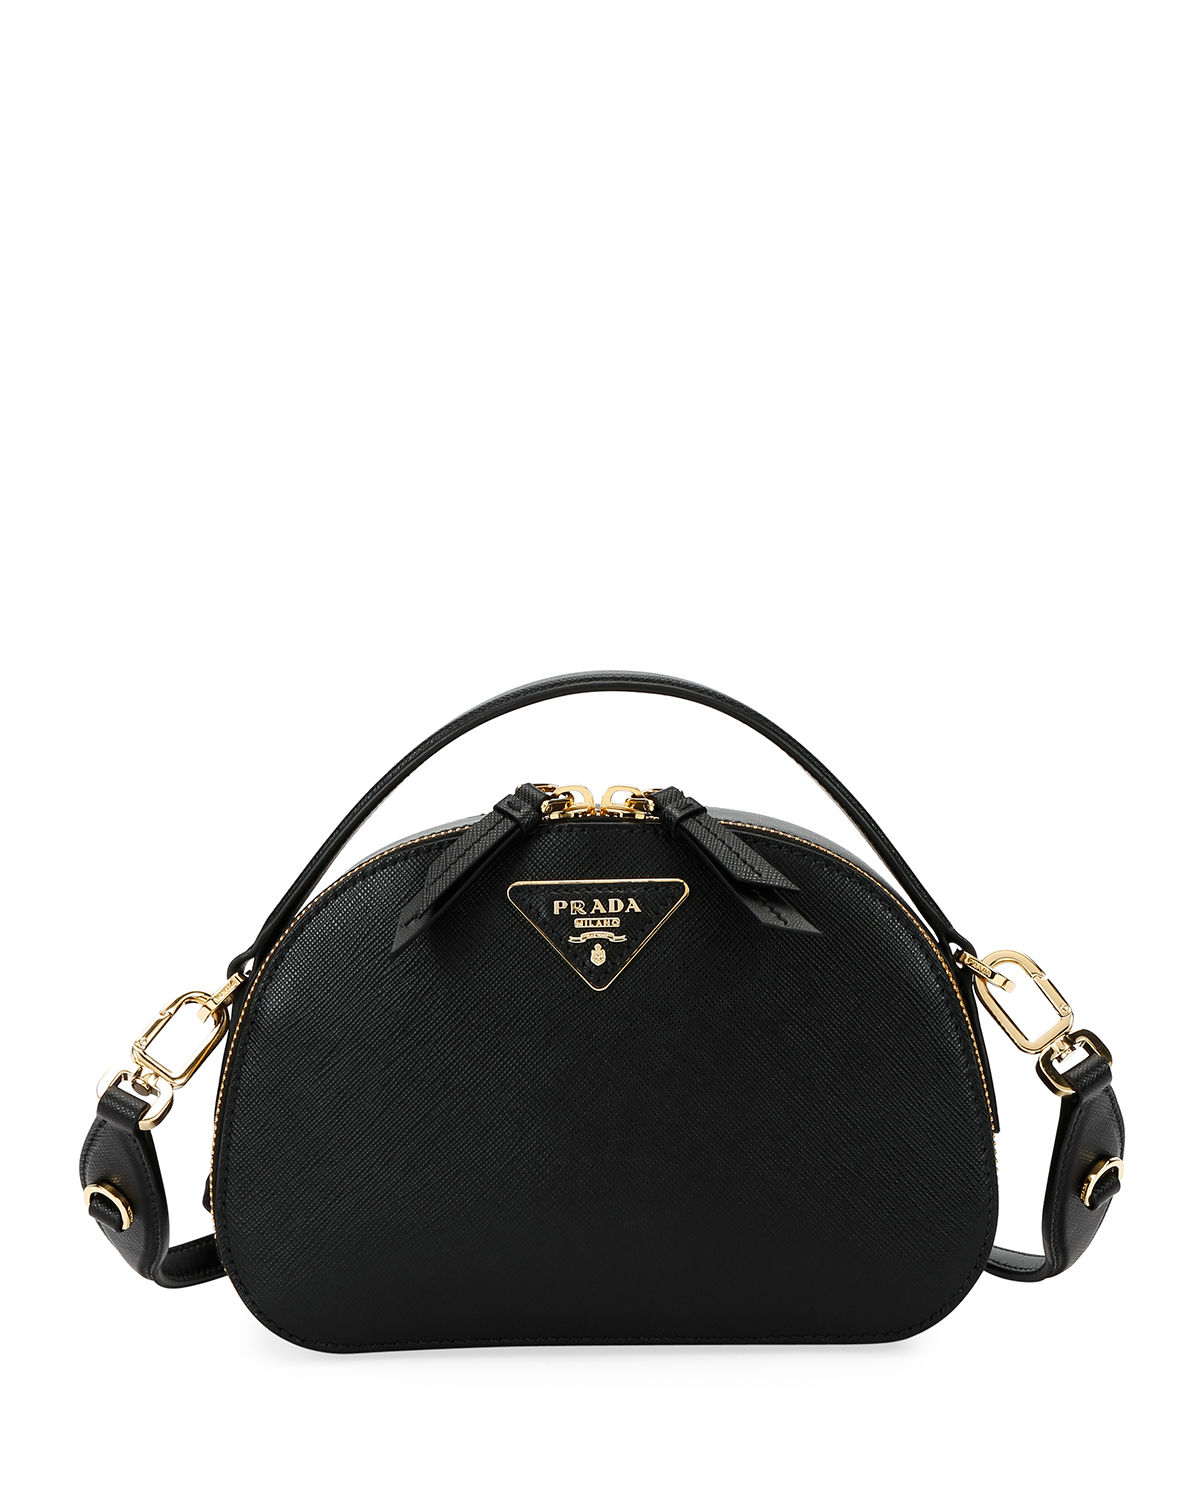 85fd7589c701 Prada Lux Saffiano Rounded Satchel Bag In Black | ModeSens